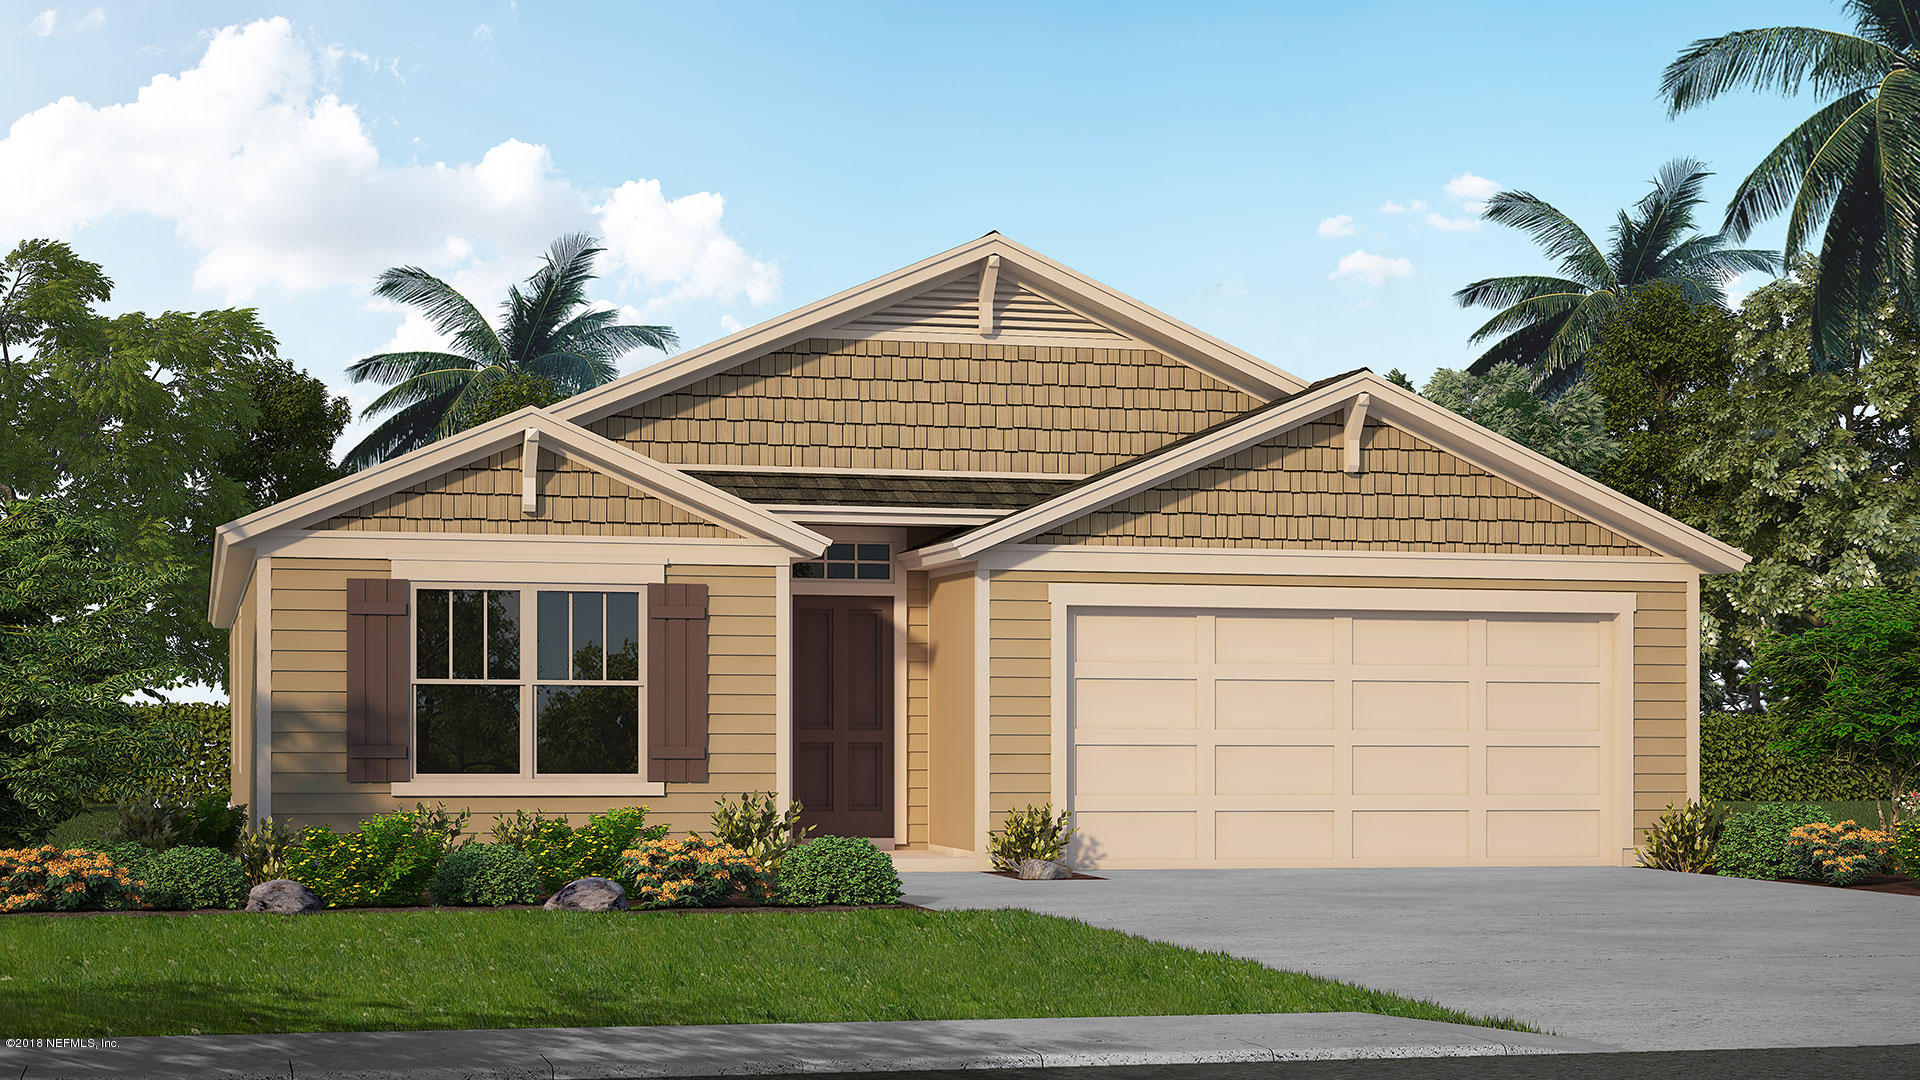 9263 BIGHORN, JACKSONVILLE, FLORIDA 32222, 4 Bedrooms Bedrooms, ,2 BathroomsBathrooms,Residential - single family,For sale,BIGHORN,970416